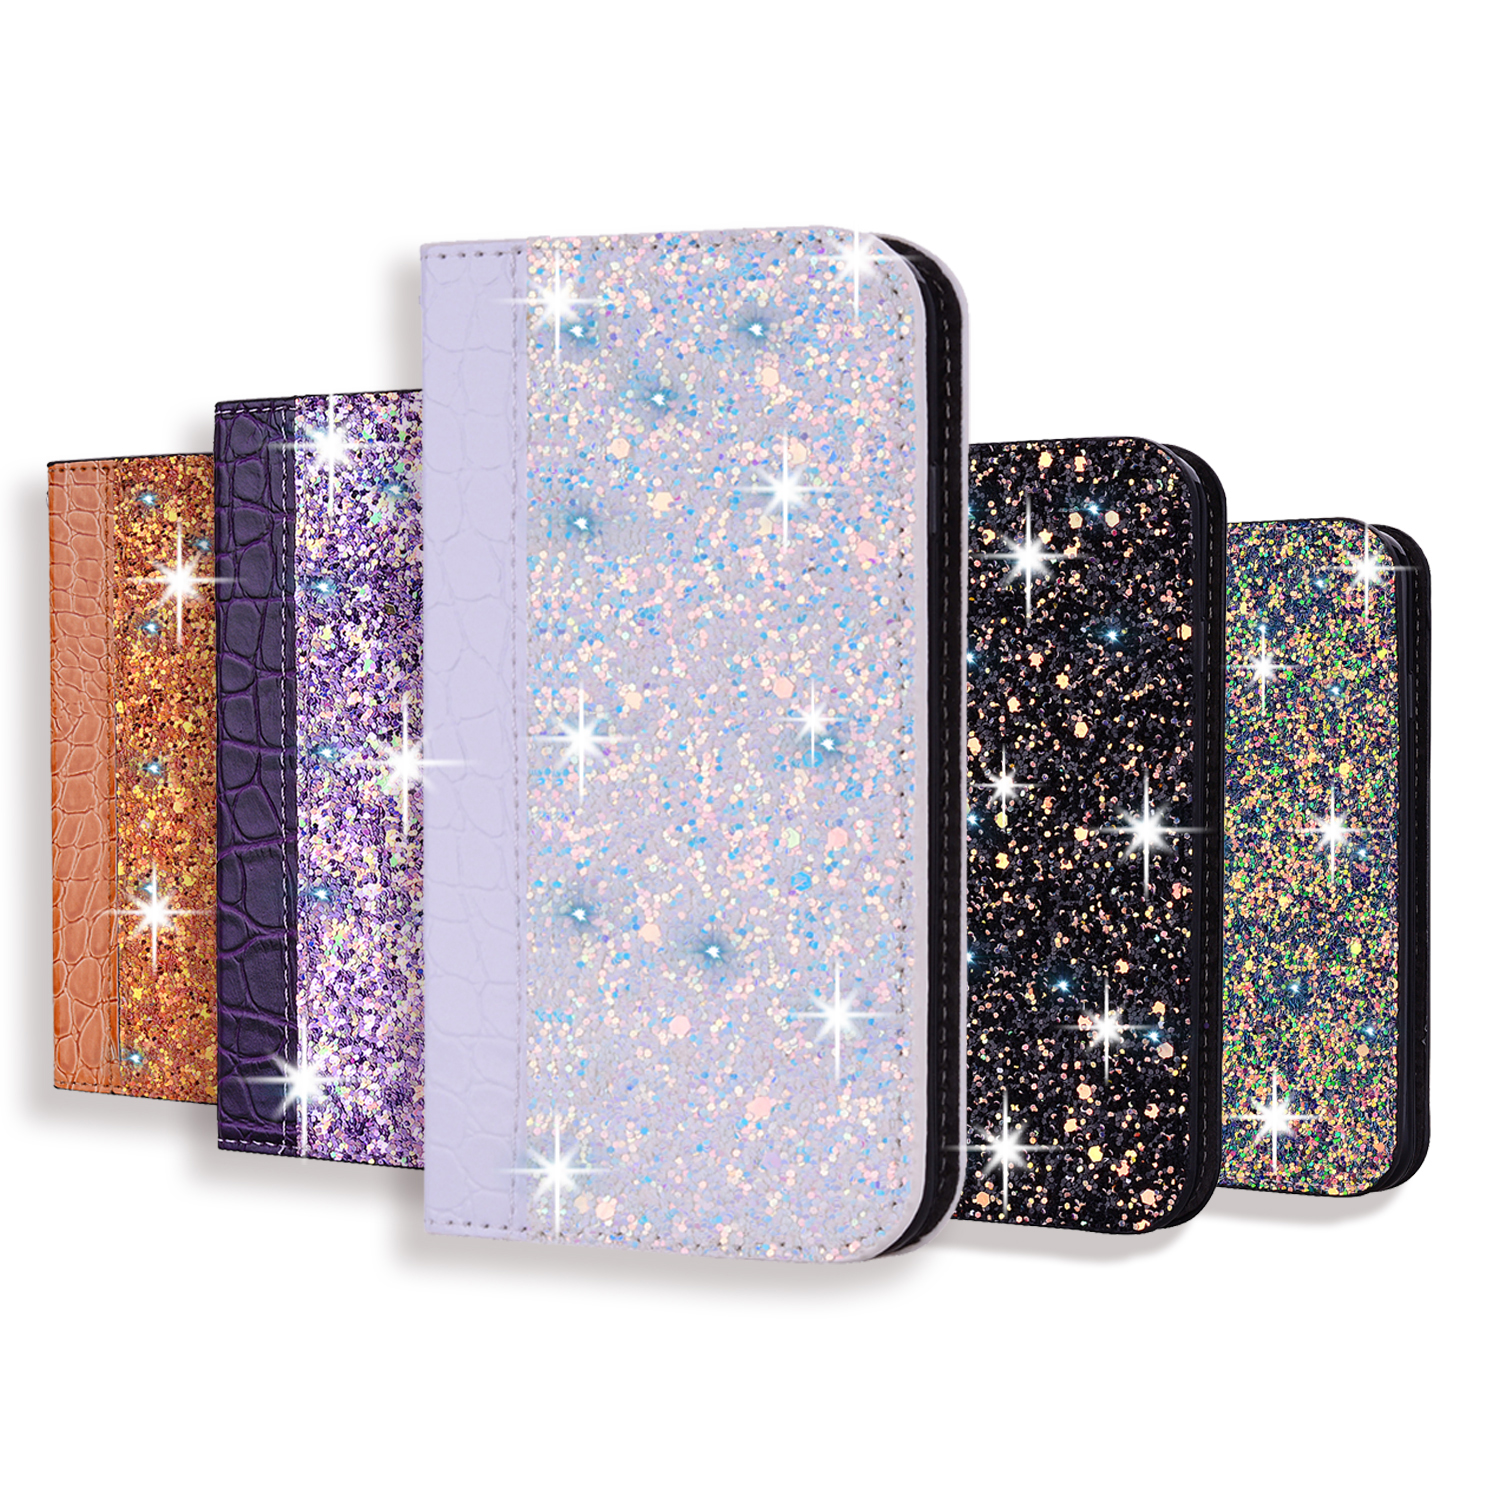 Glitter Bling <font><b>Case</b></font> For <font><b>Samsung</b></font> <font><b>Galaxy</b></font> S11 8 9 10 Plus Leather <font><b>Flip</b></font> Book Coque for <font><b>Samsung</b></font> A71 A50 A70 A40 A5 <font><b>A6</b></font> A7 A8 A9 Funda image